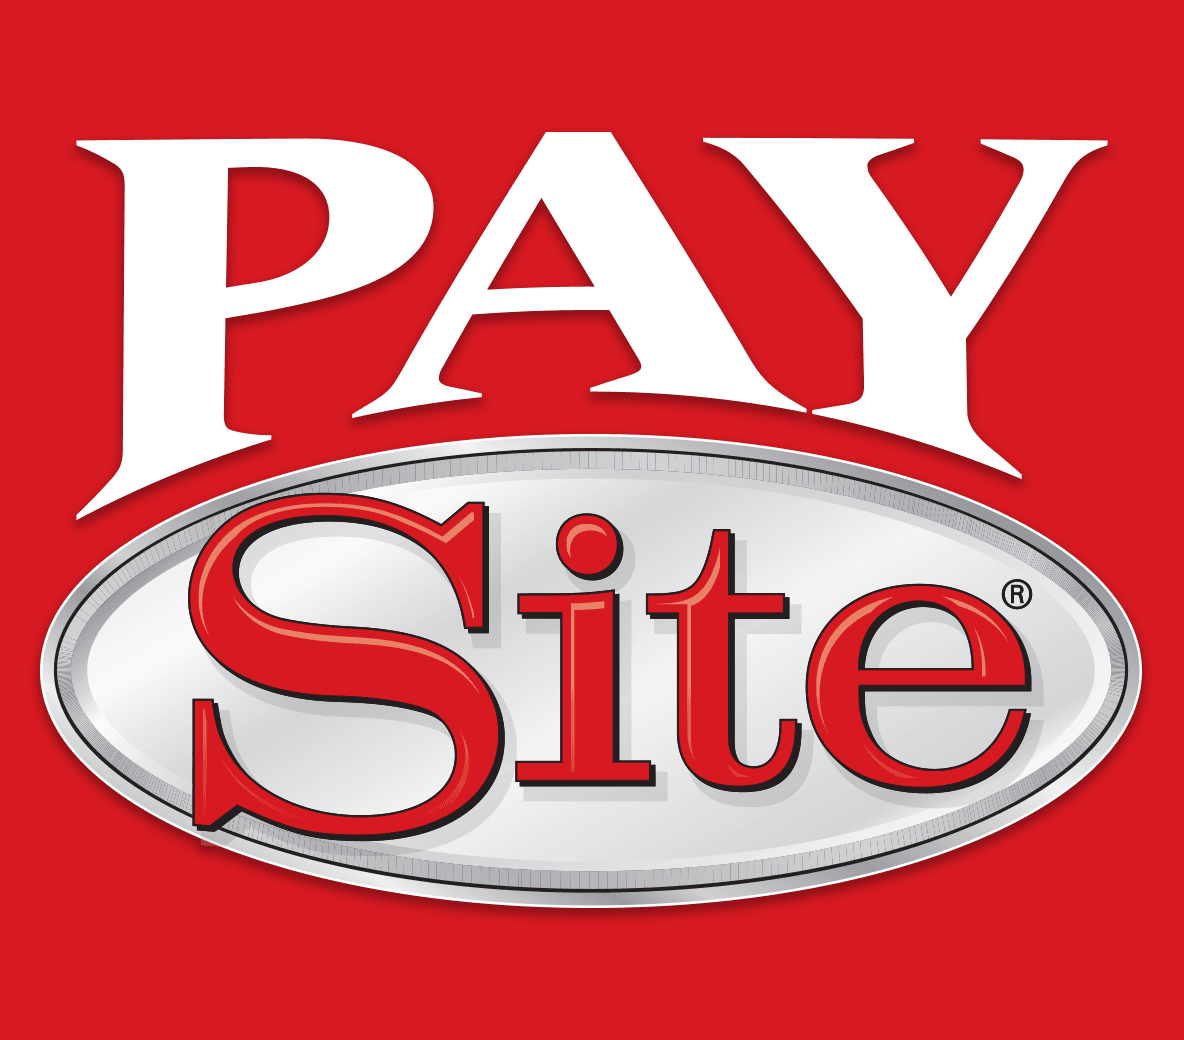 PaySite News Flash Image